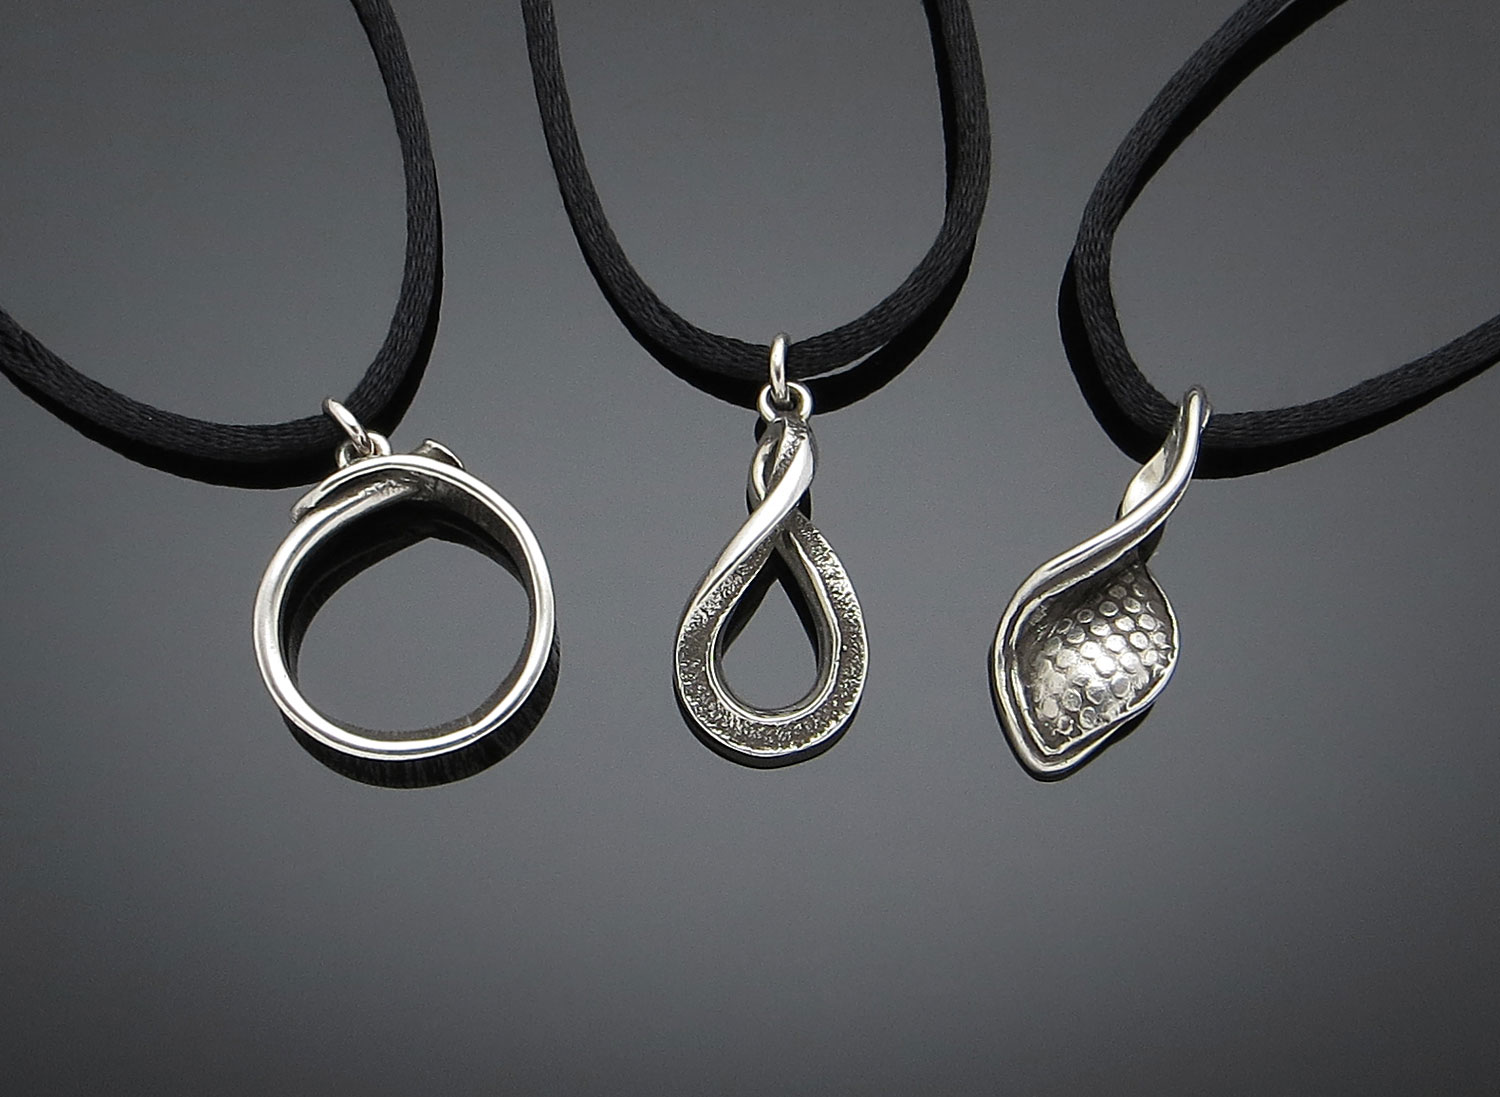 Sterling pendants on satin cord